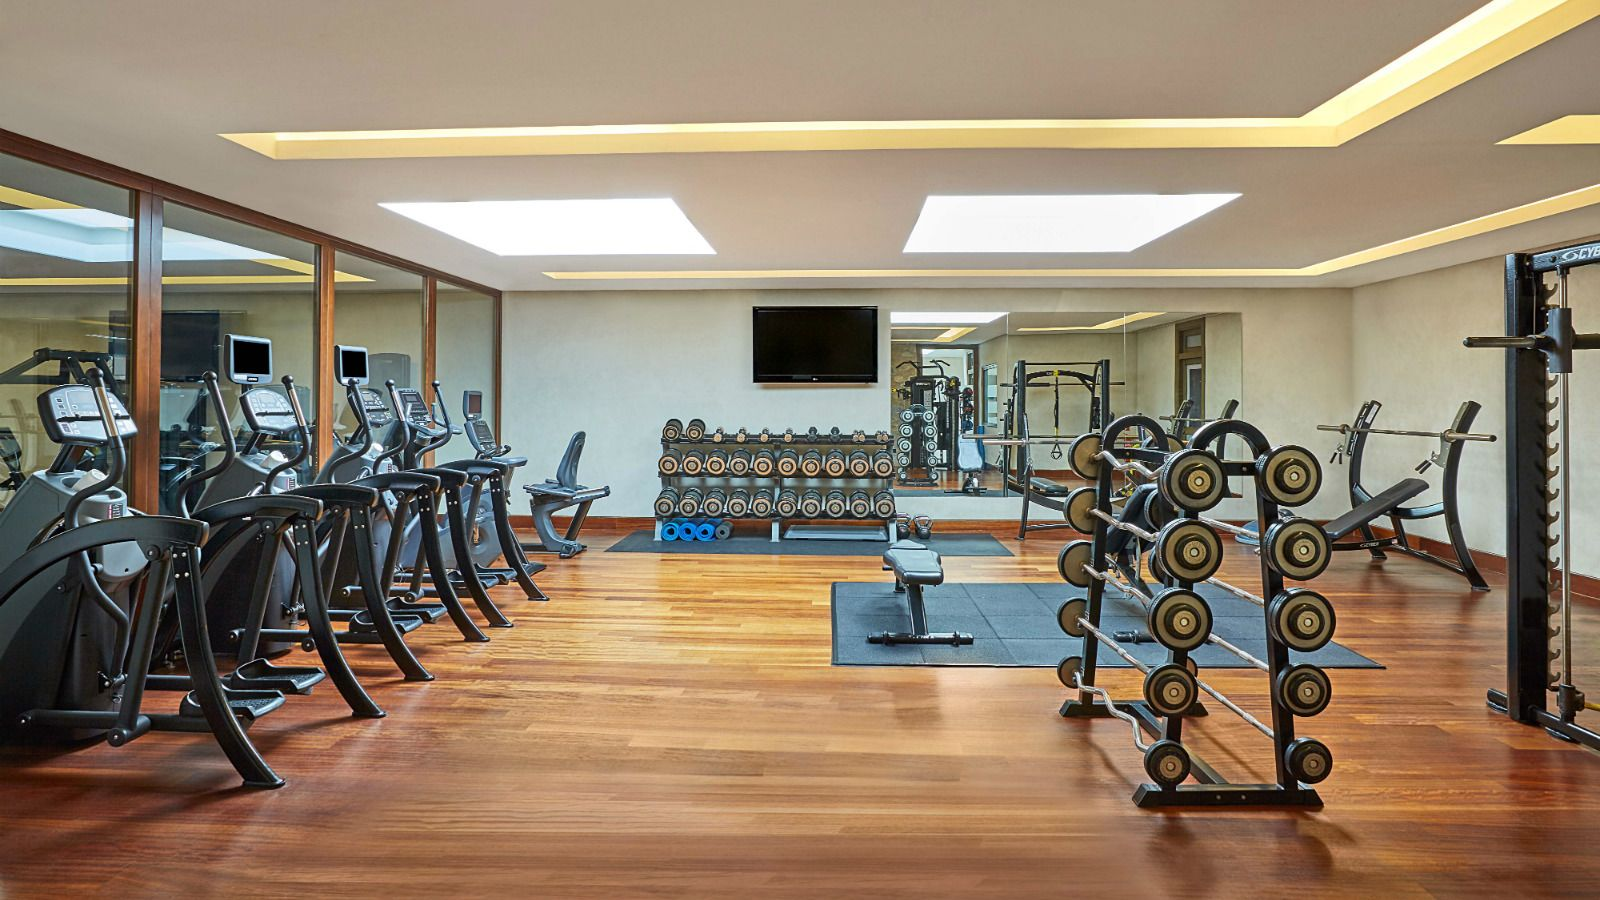 The Westin Resort Costa Navarino WestinWORKOUT Gym Facilities